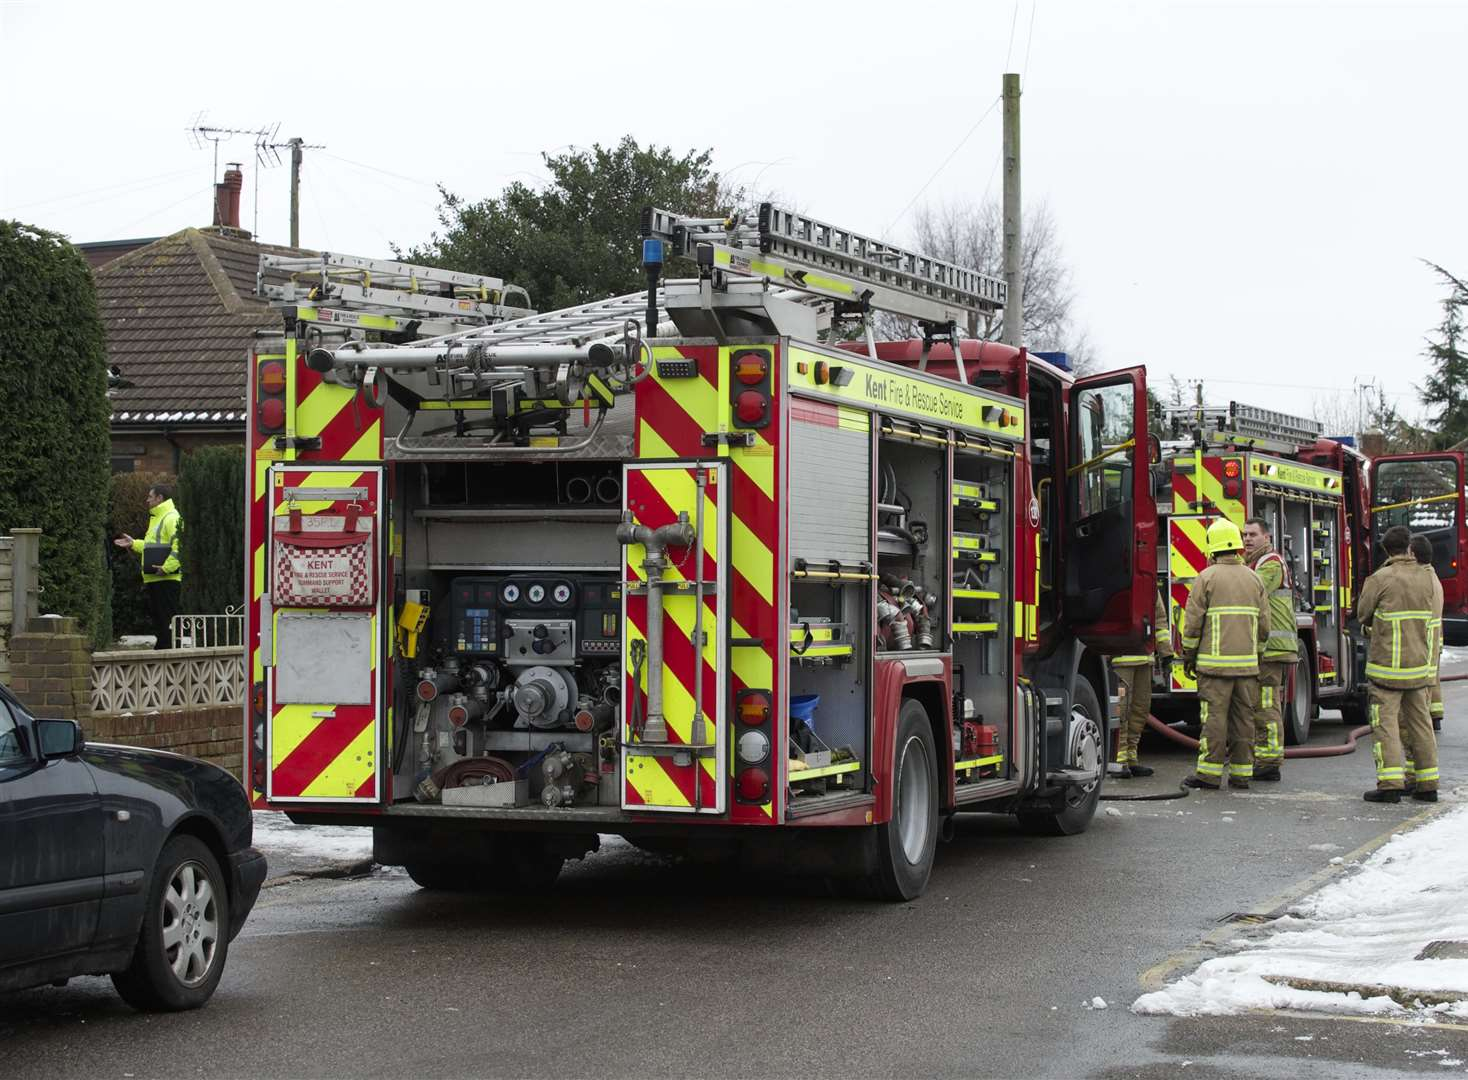 Fire in derelict building spreads